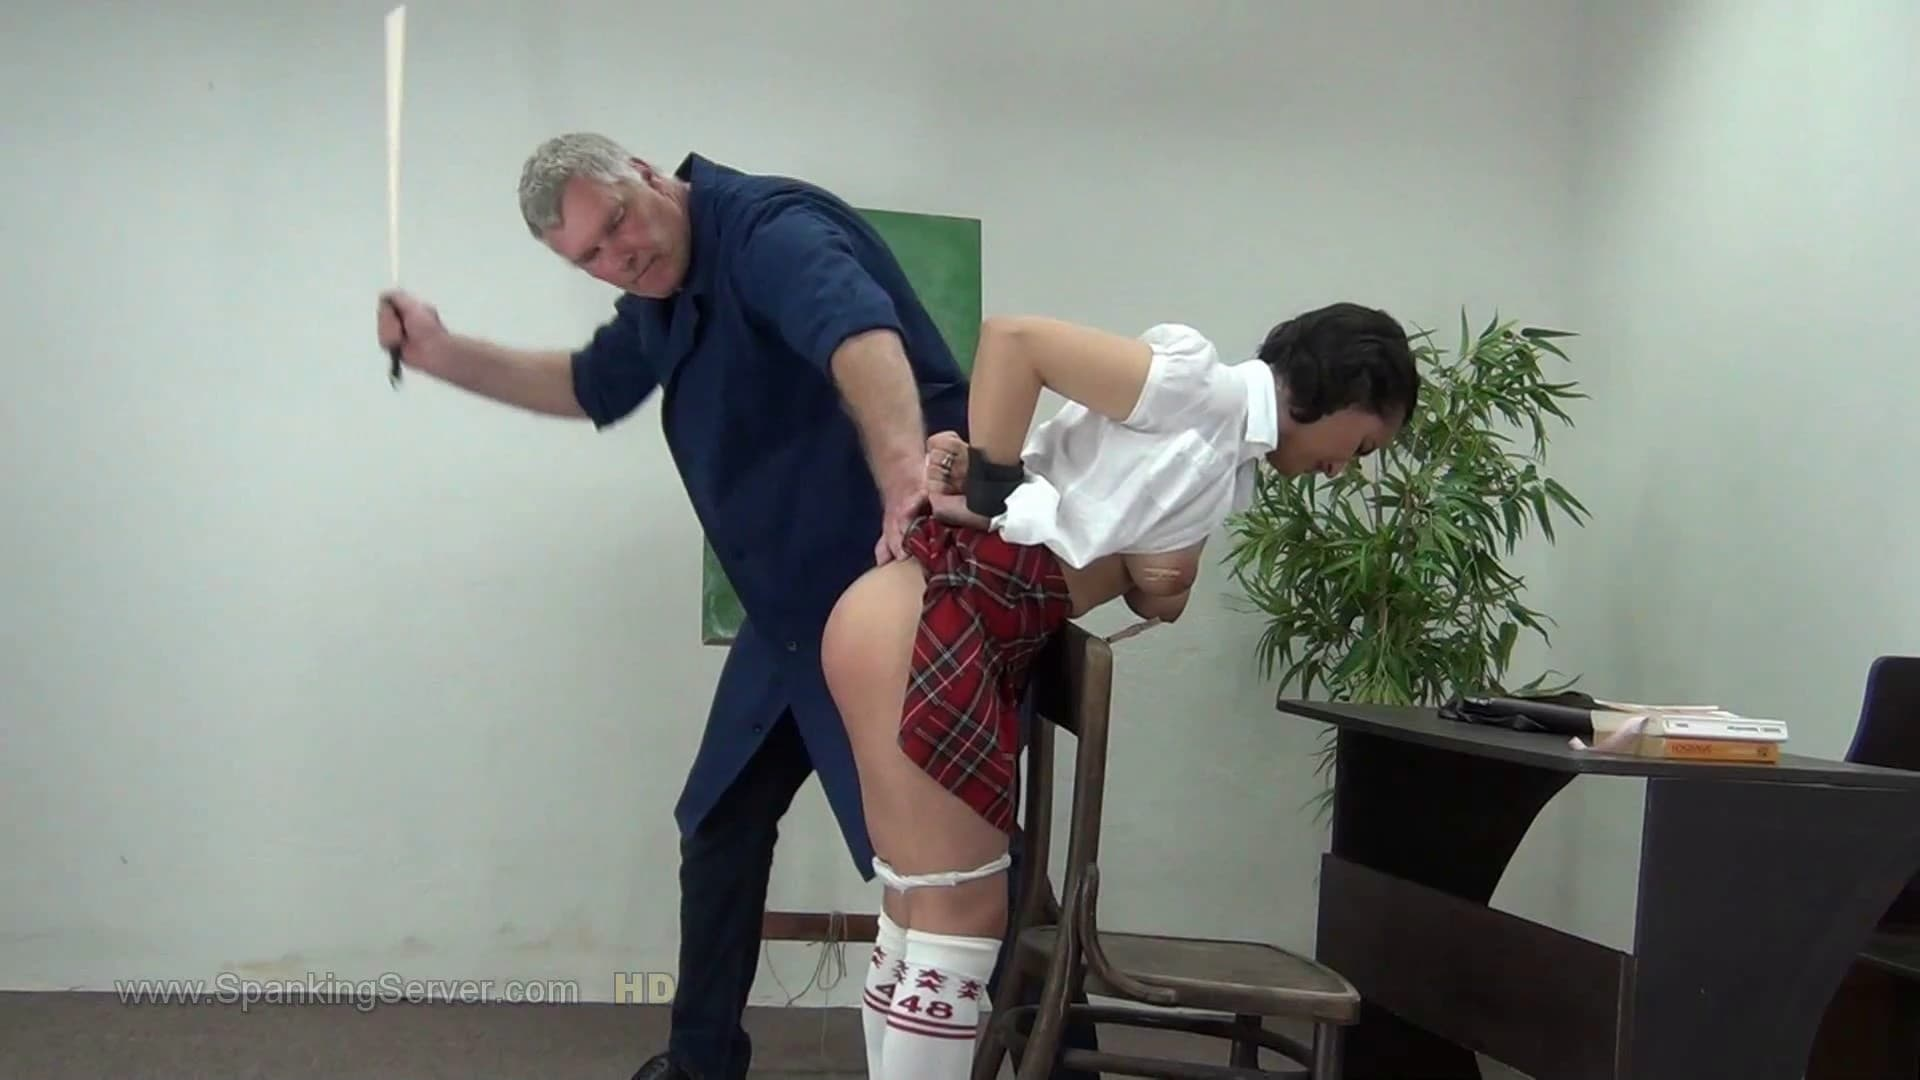 Spanking Server – MP4/Full HD – Yasmeena – 2021 – 07 Week